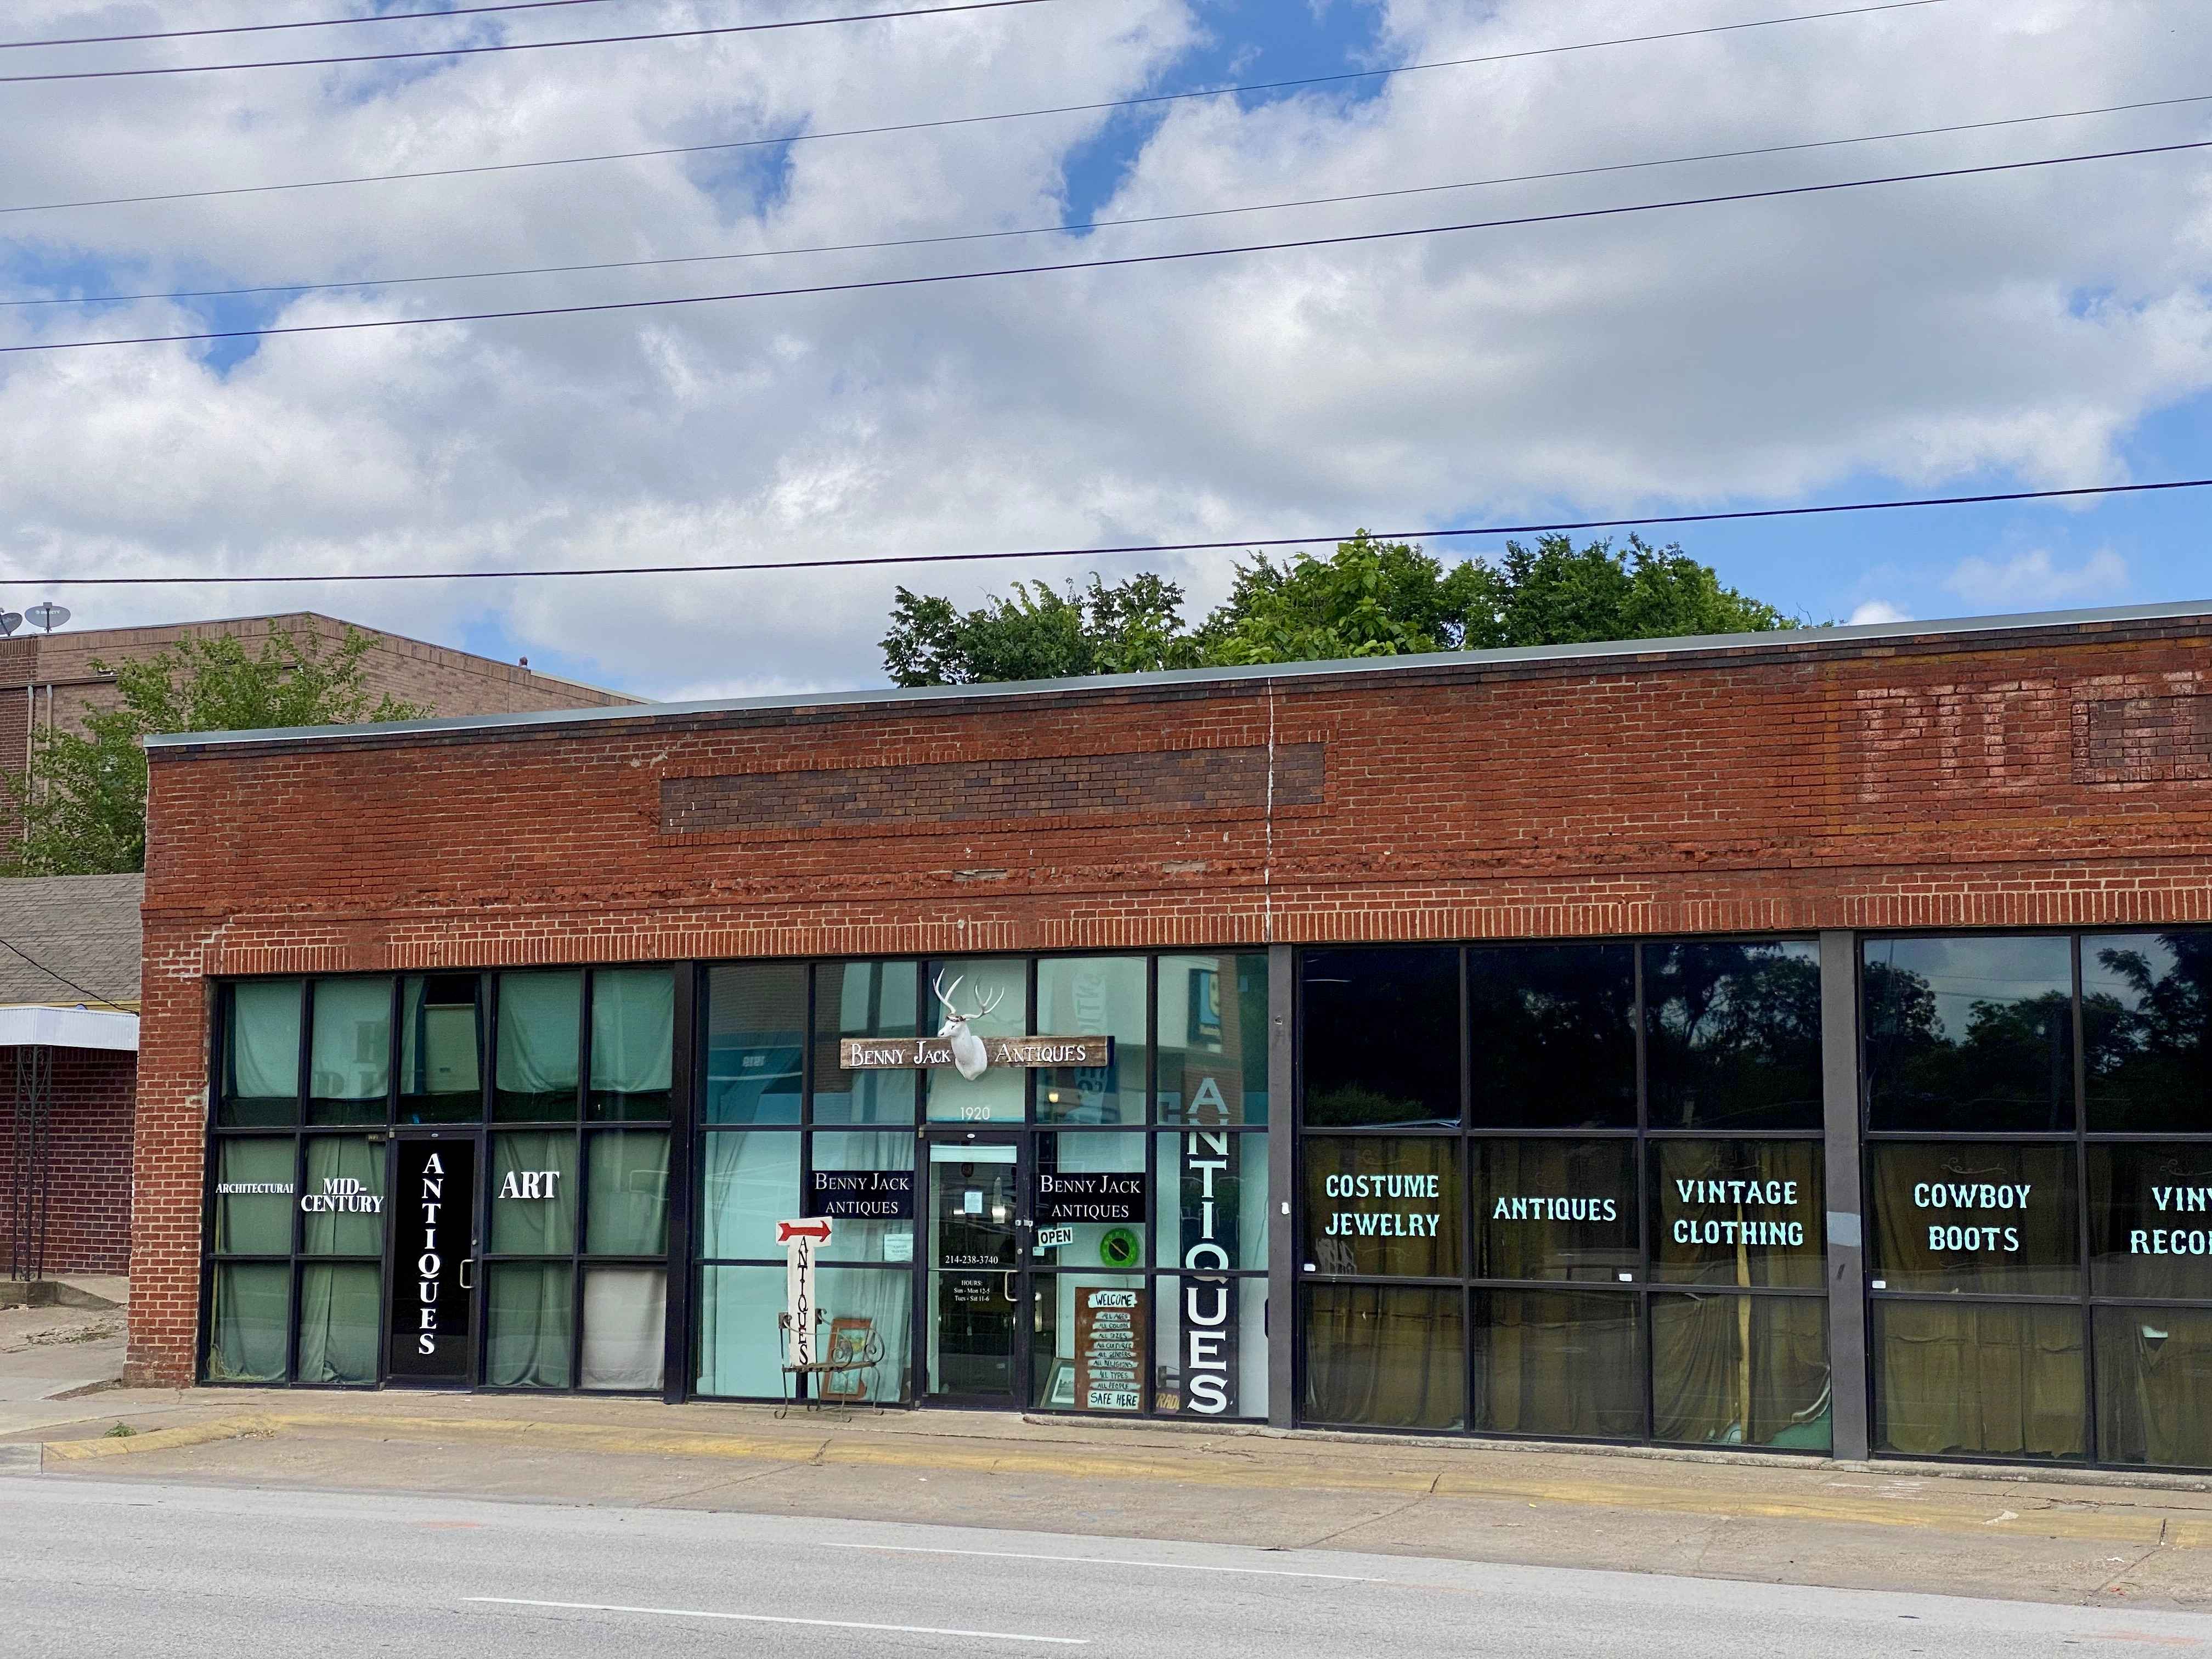 Cityscape Shops on N Haskell Ave in Dallas, TX